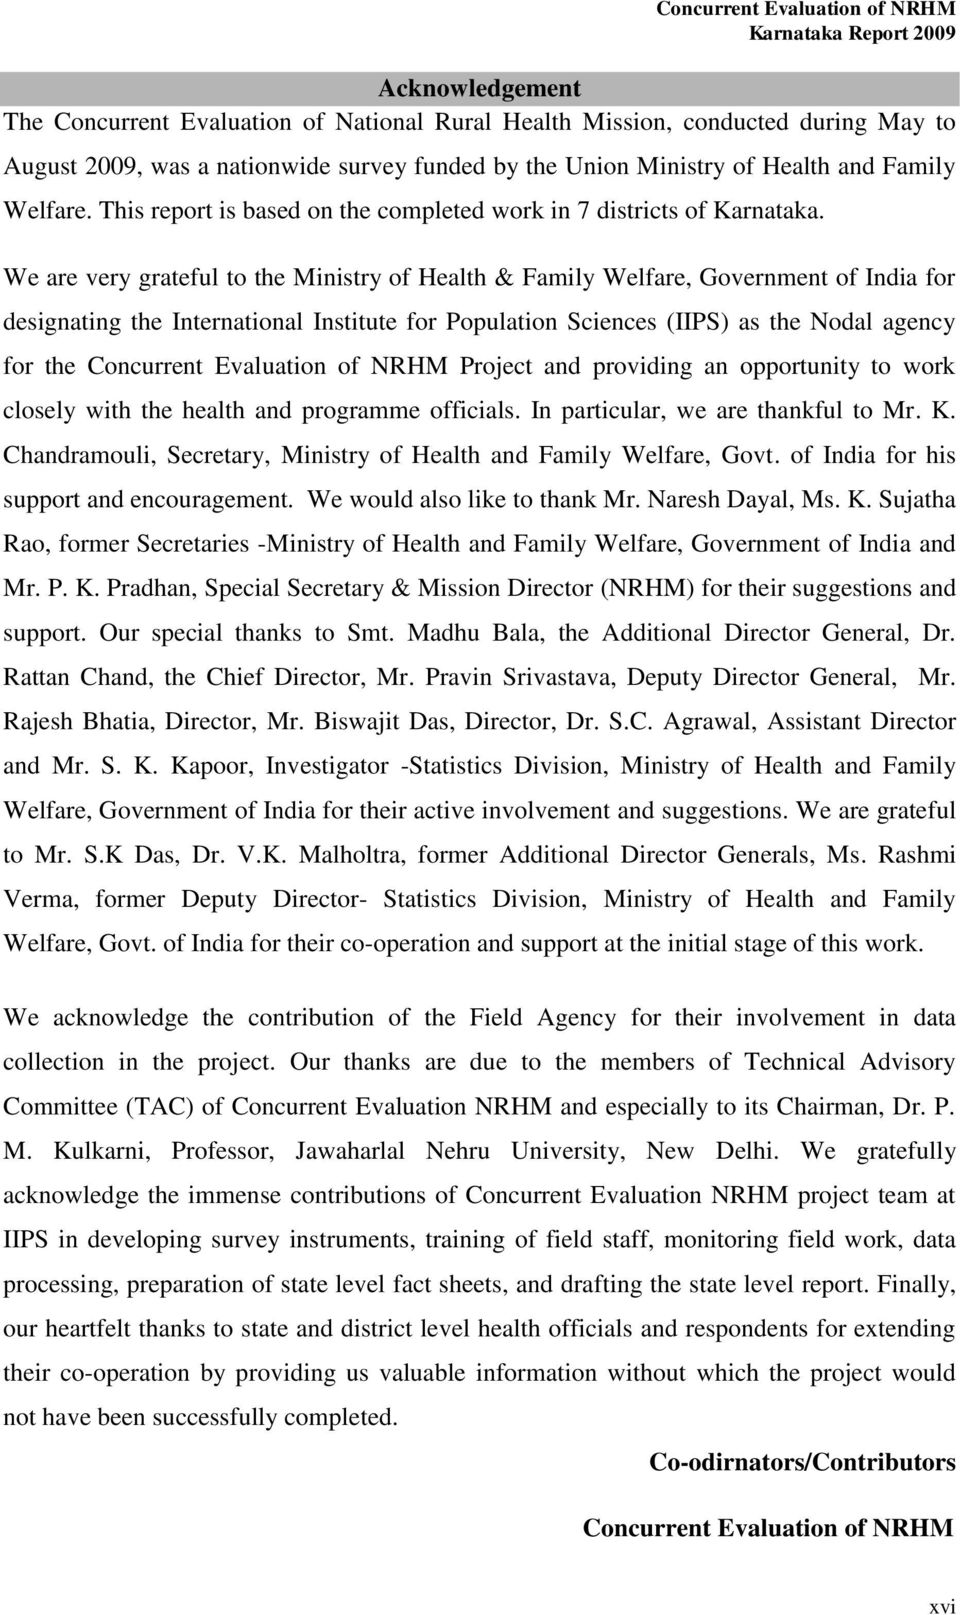 We are very grateful to the Ministry of Health & Family Welfare, Government of India for designating the International Institute for Population Sciences (IIPS) as the Nodal agency for the Concurrent